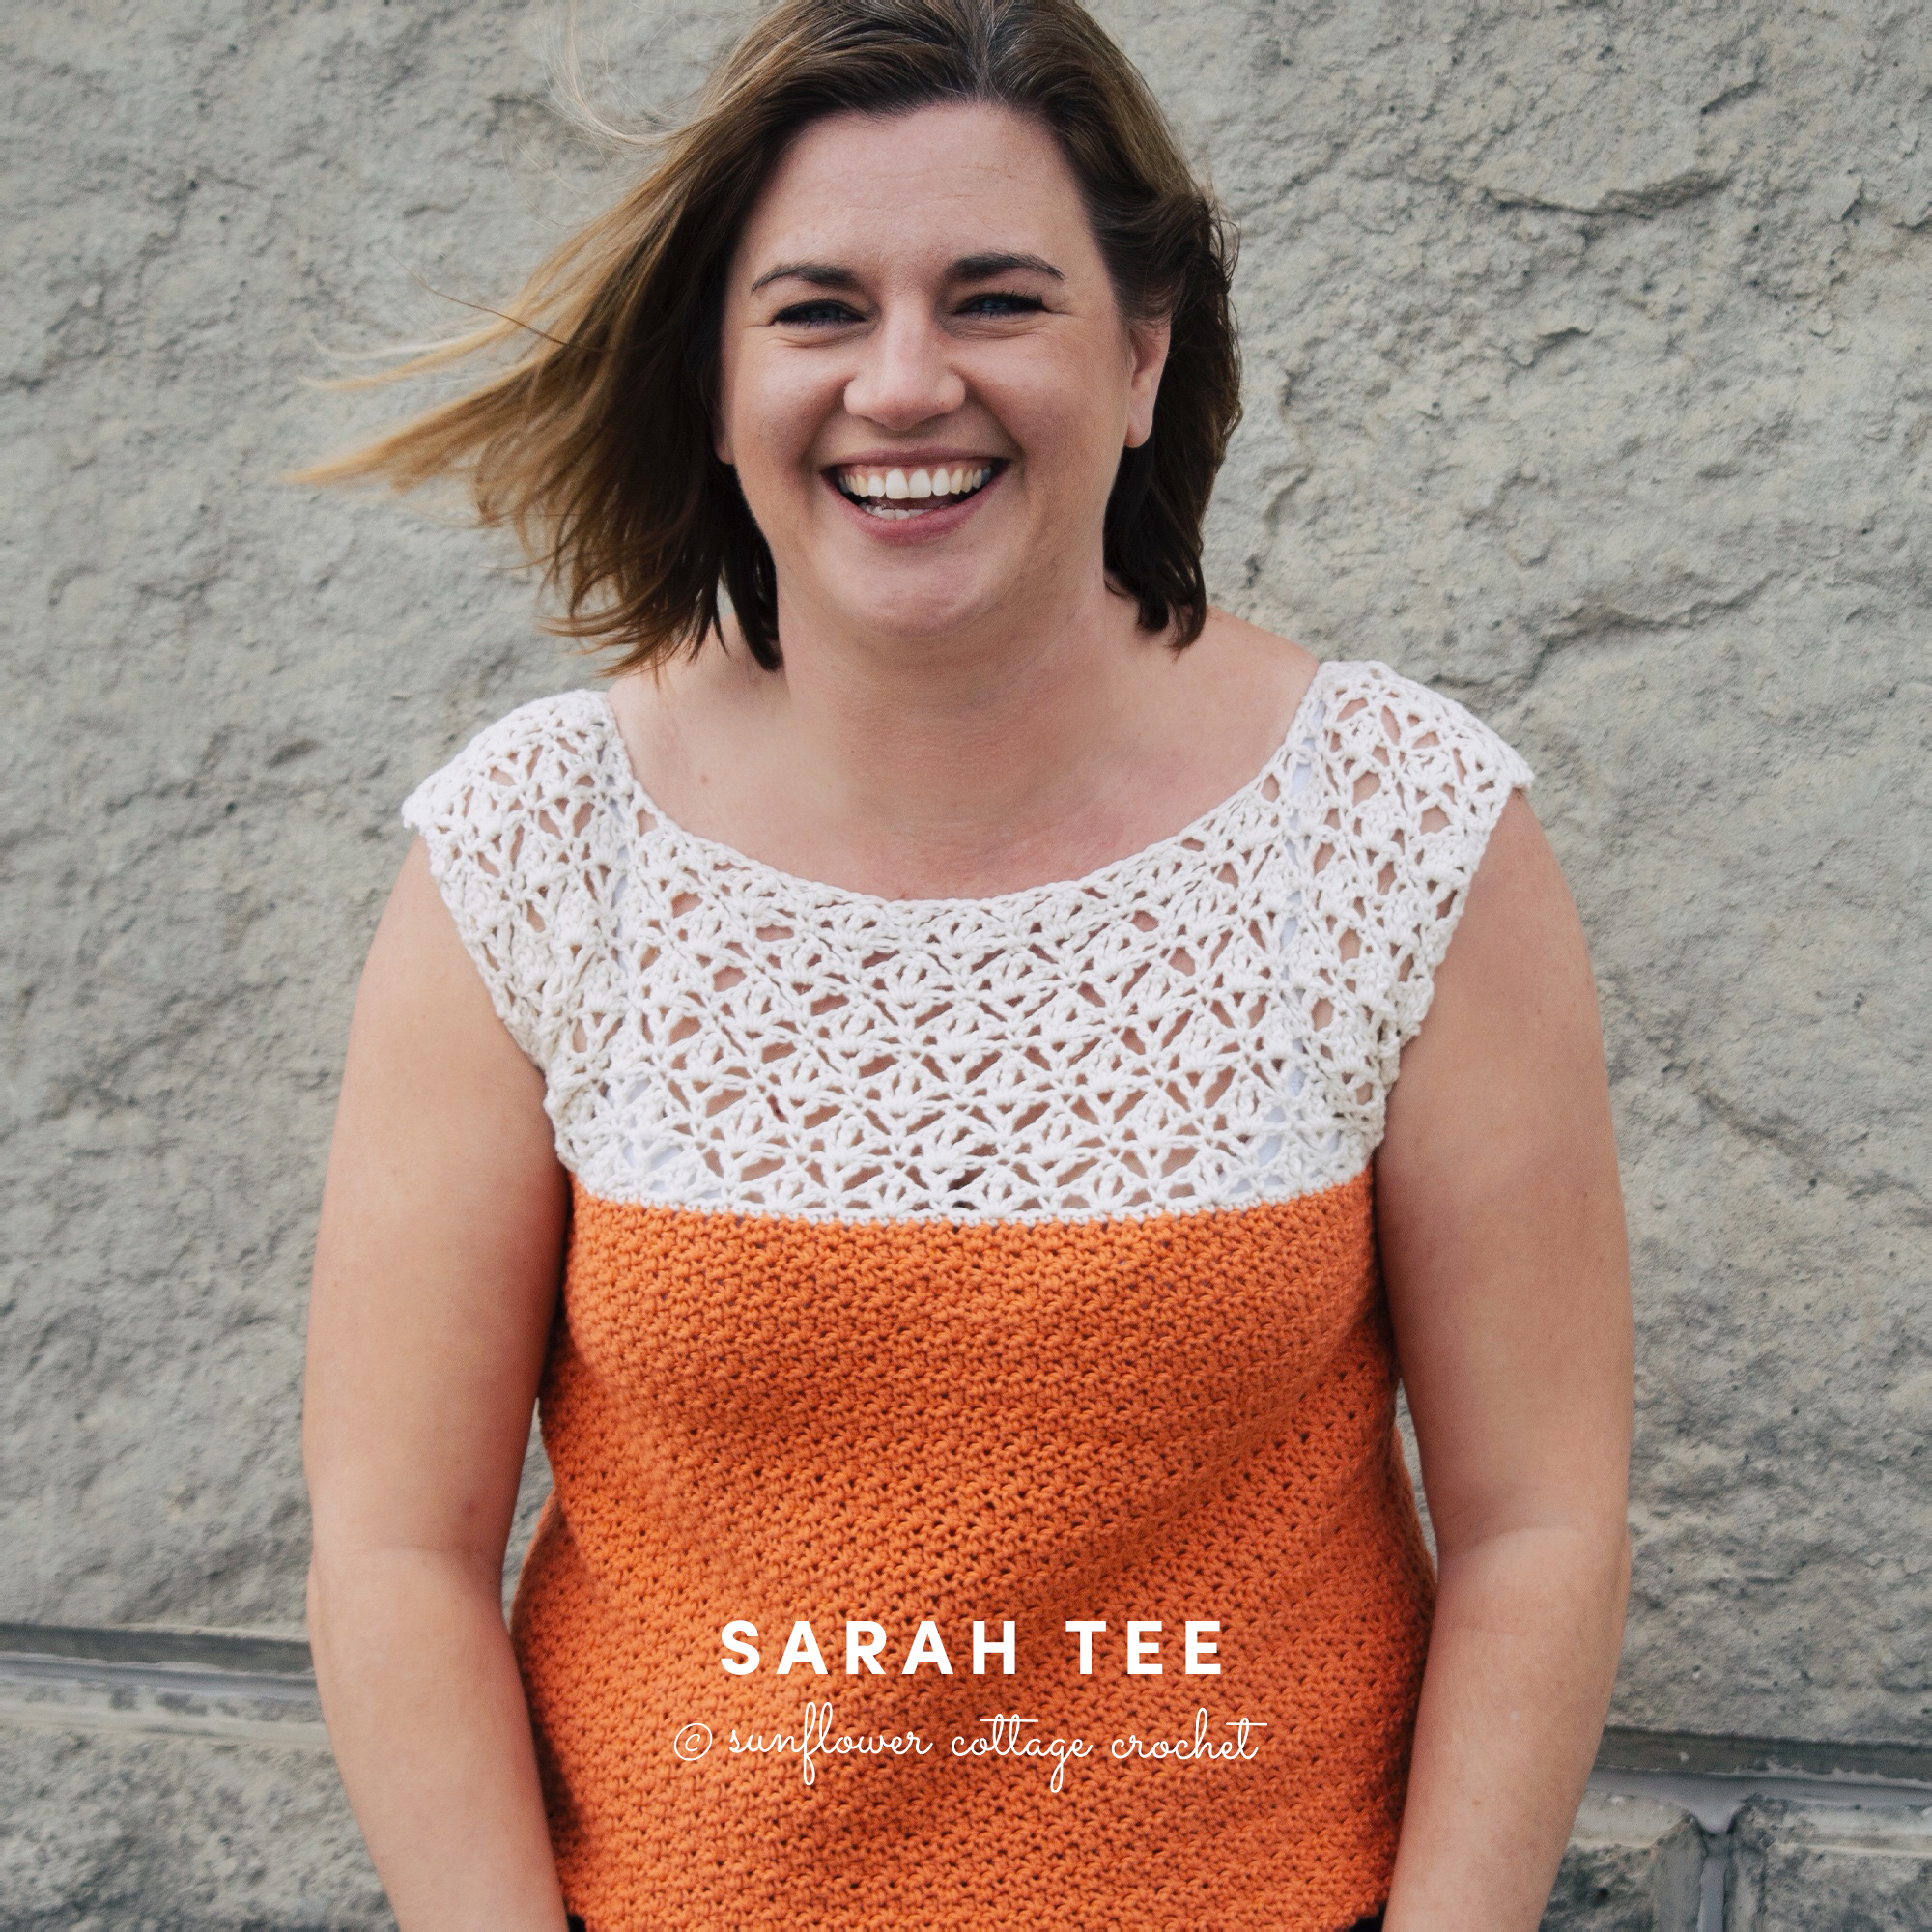 The Sarah Tee is a great spring and summer top with a lacy section at the top perfectly placed to protect your modesty!